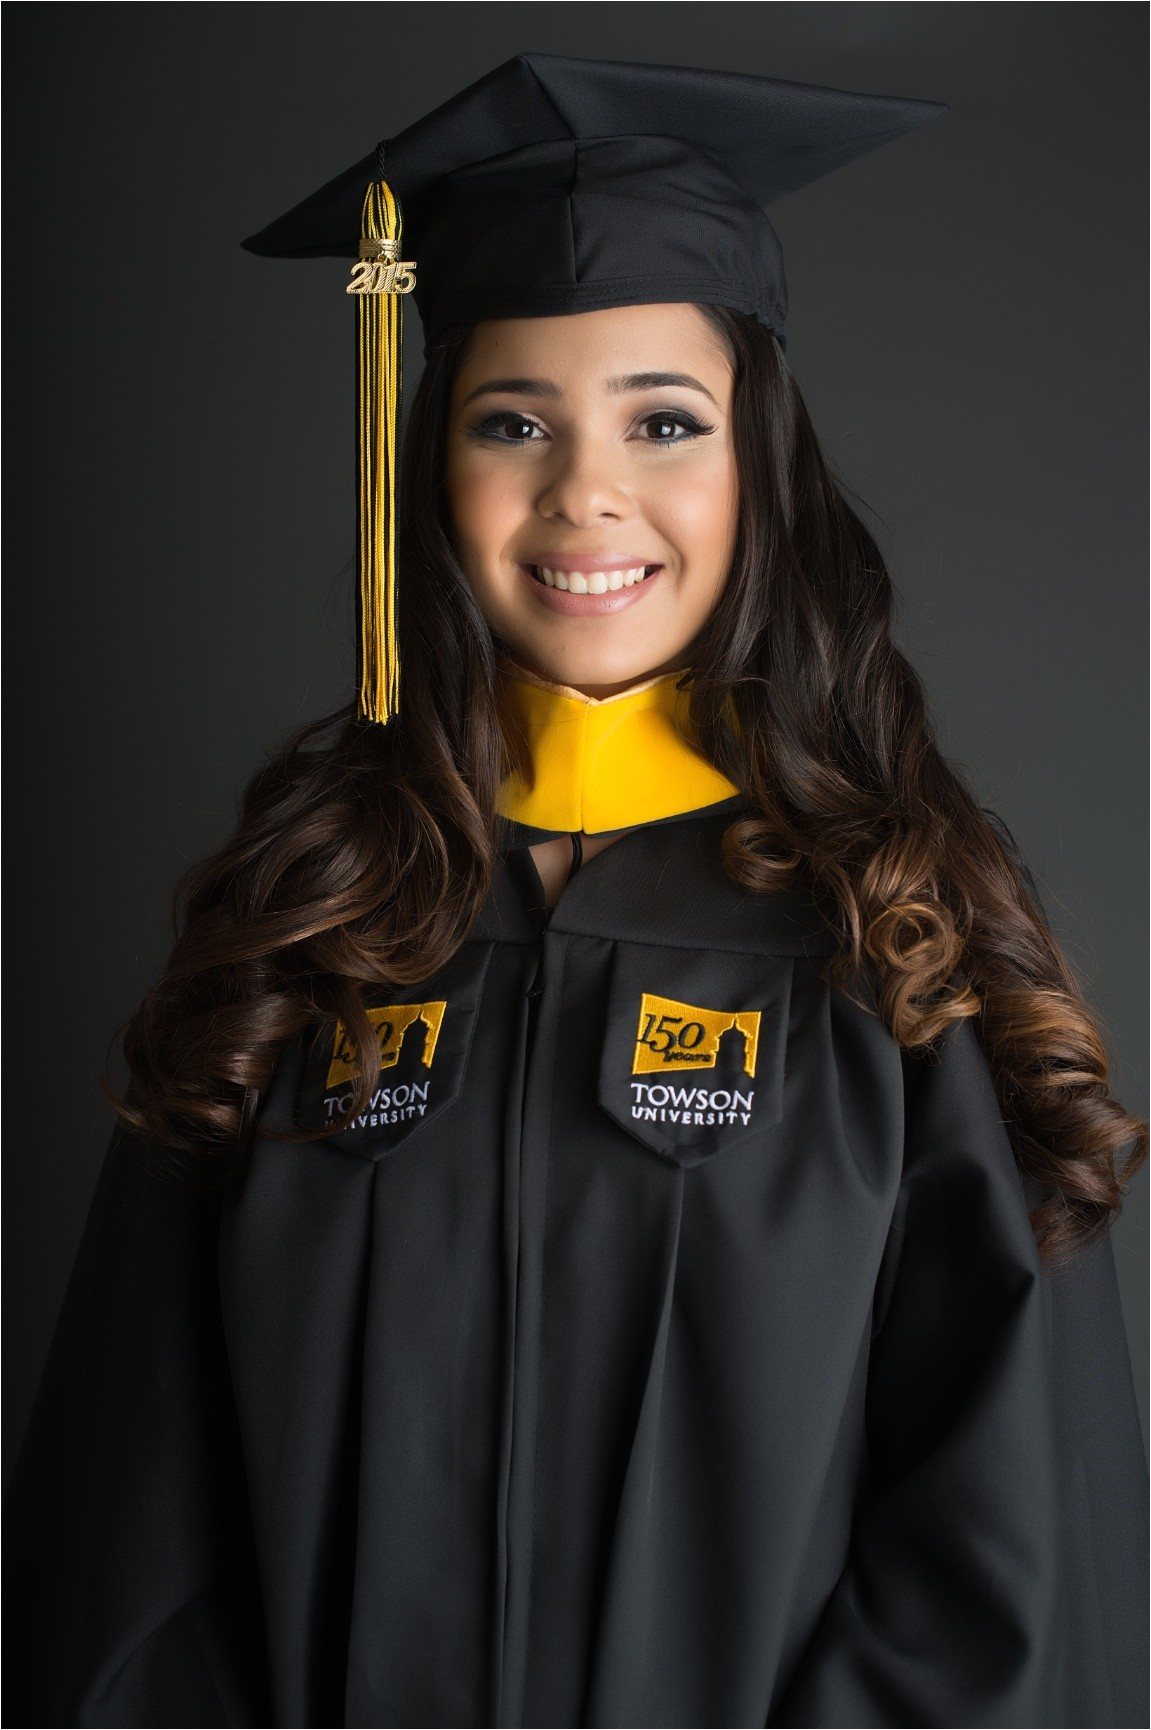 towson university graduation photos towson maryland